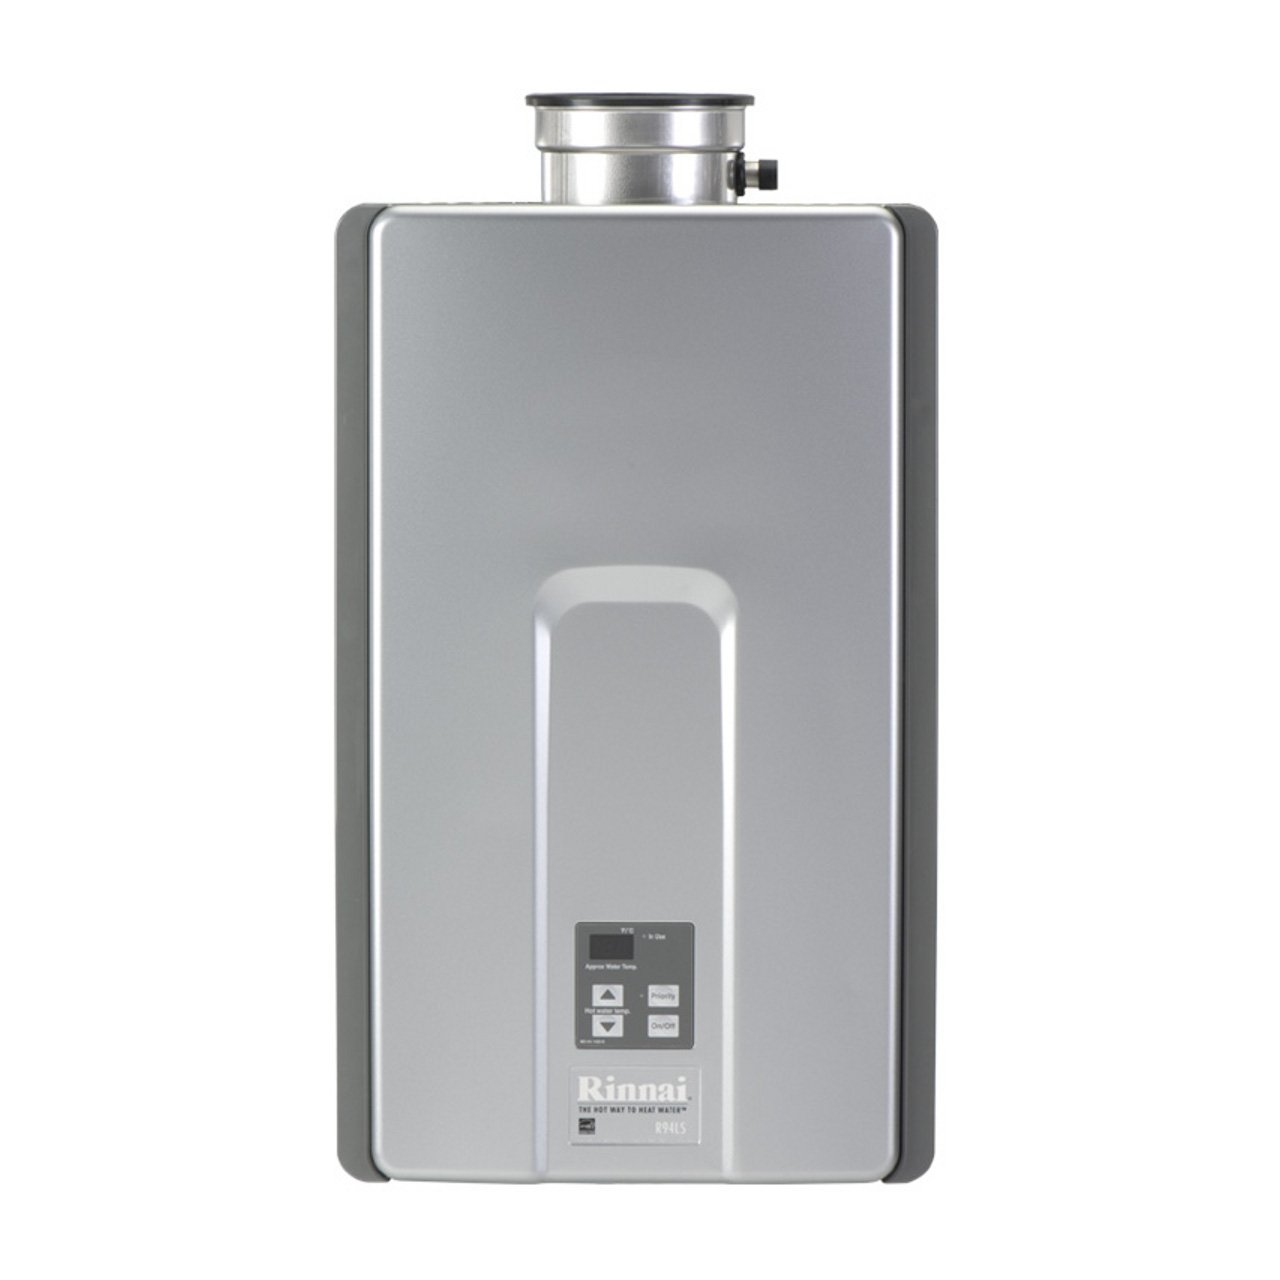 Rinnai RL94iN Natural Gas Tankless Water Heater, 9.4 Gallons Per Minute